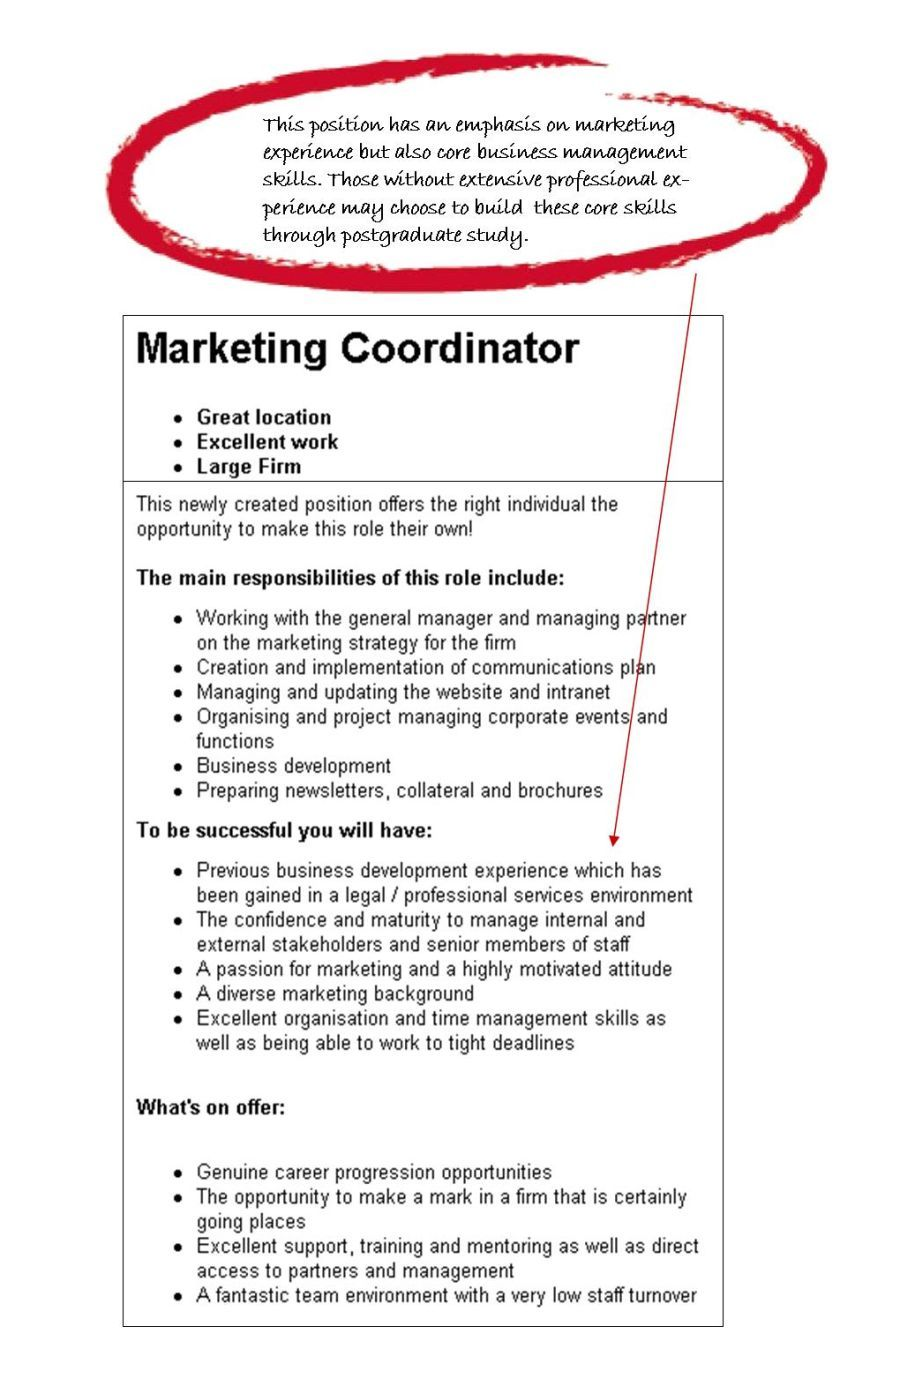 Resume Objective Objectives For Resume  Resume  Pinterest  Resume Objective And